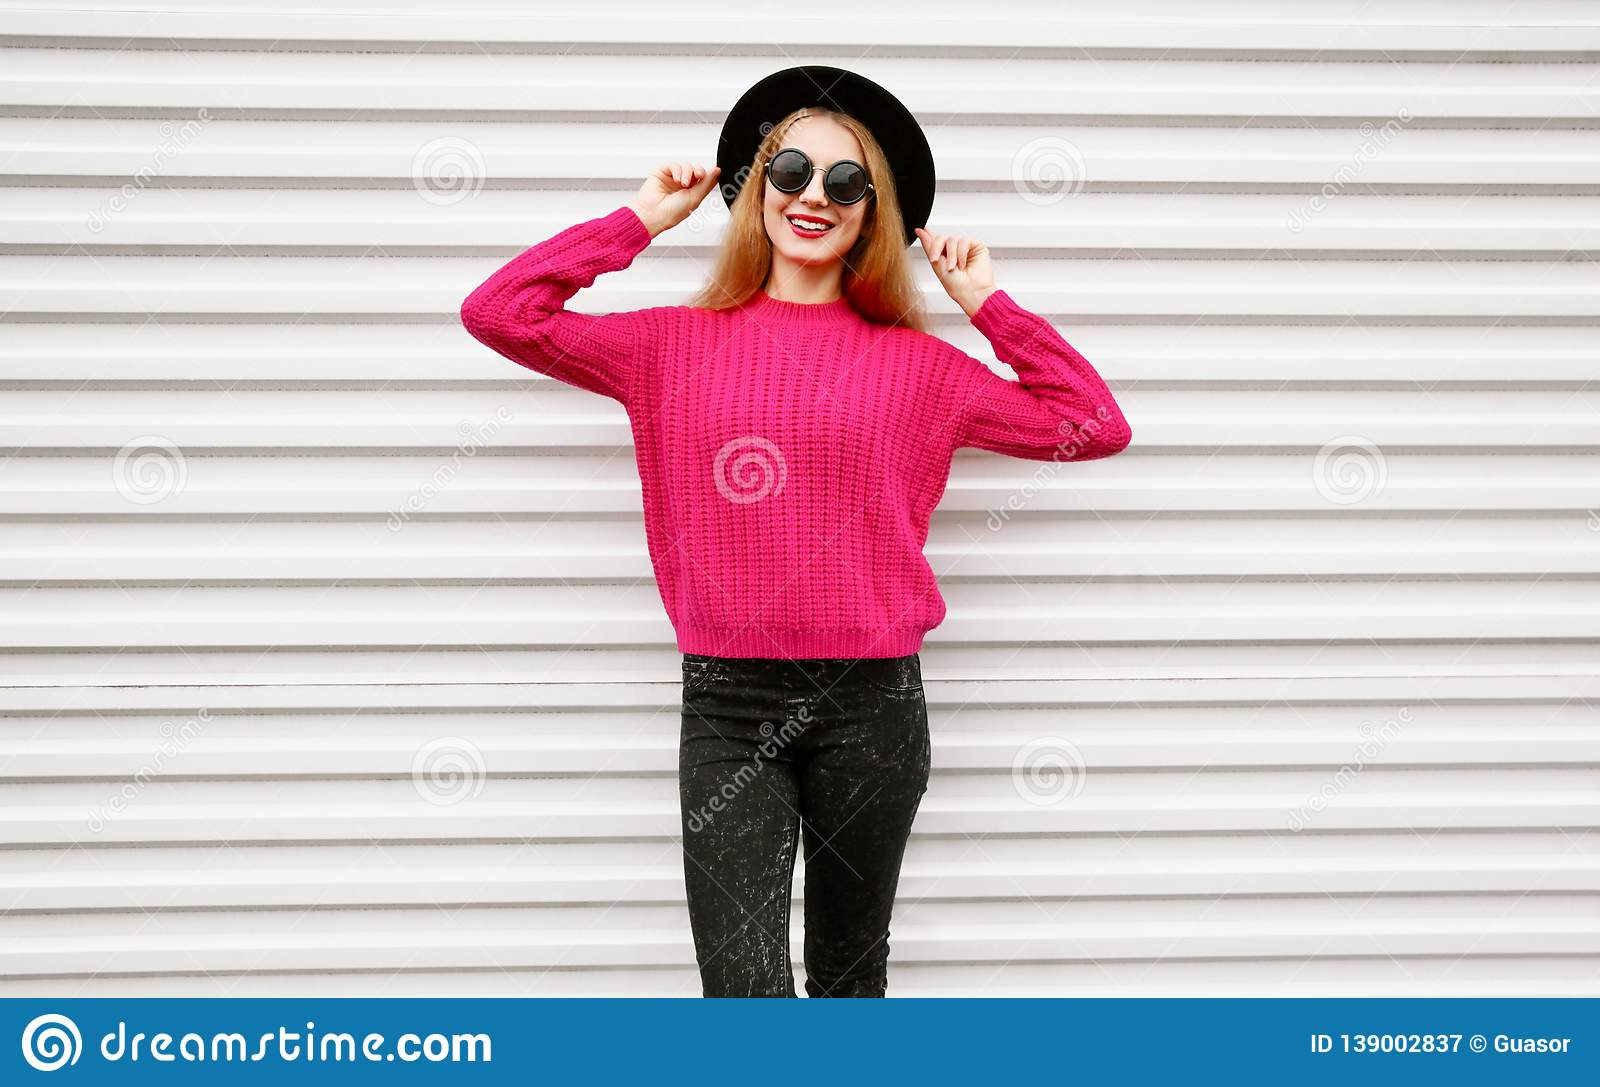 Stylish happy young woman in colorful pink knitted sweater, black round hat posing on city white wall